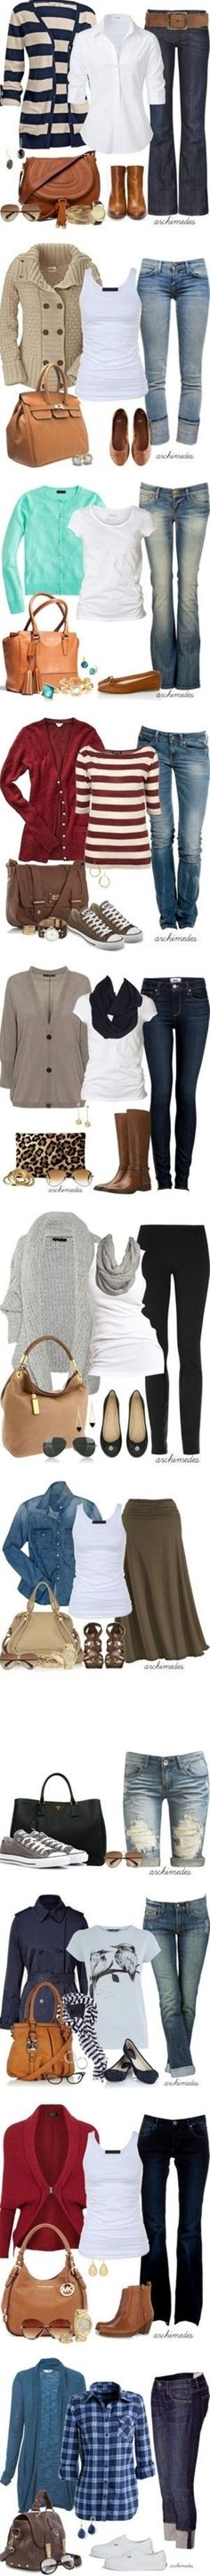 Cute Fall Outfit Ideas love all these combos